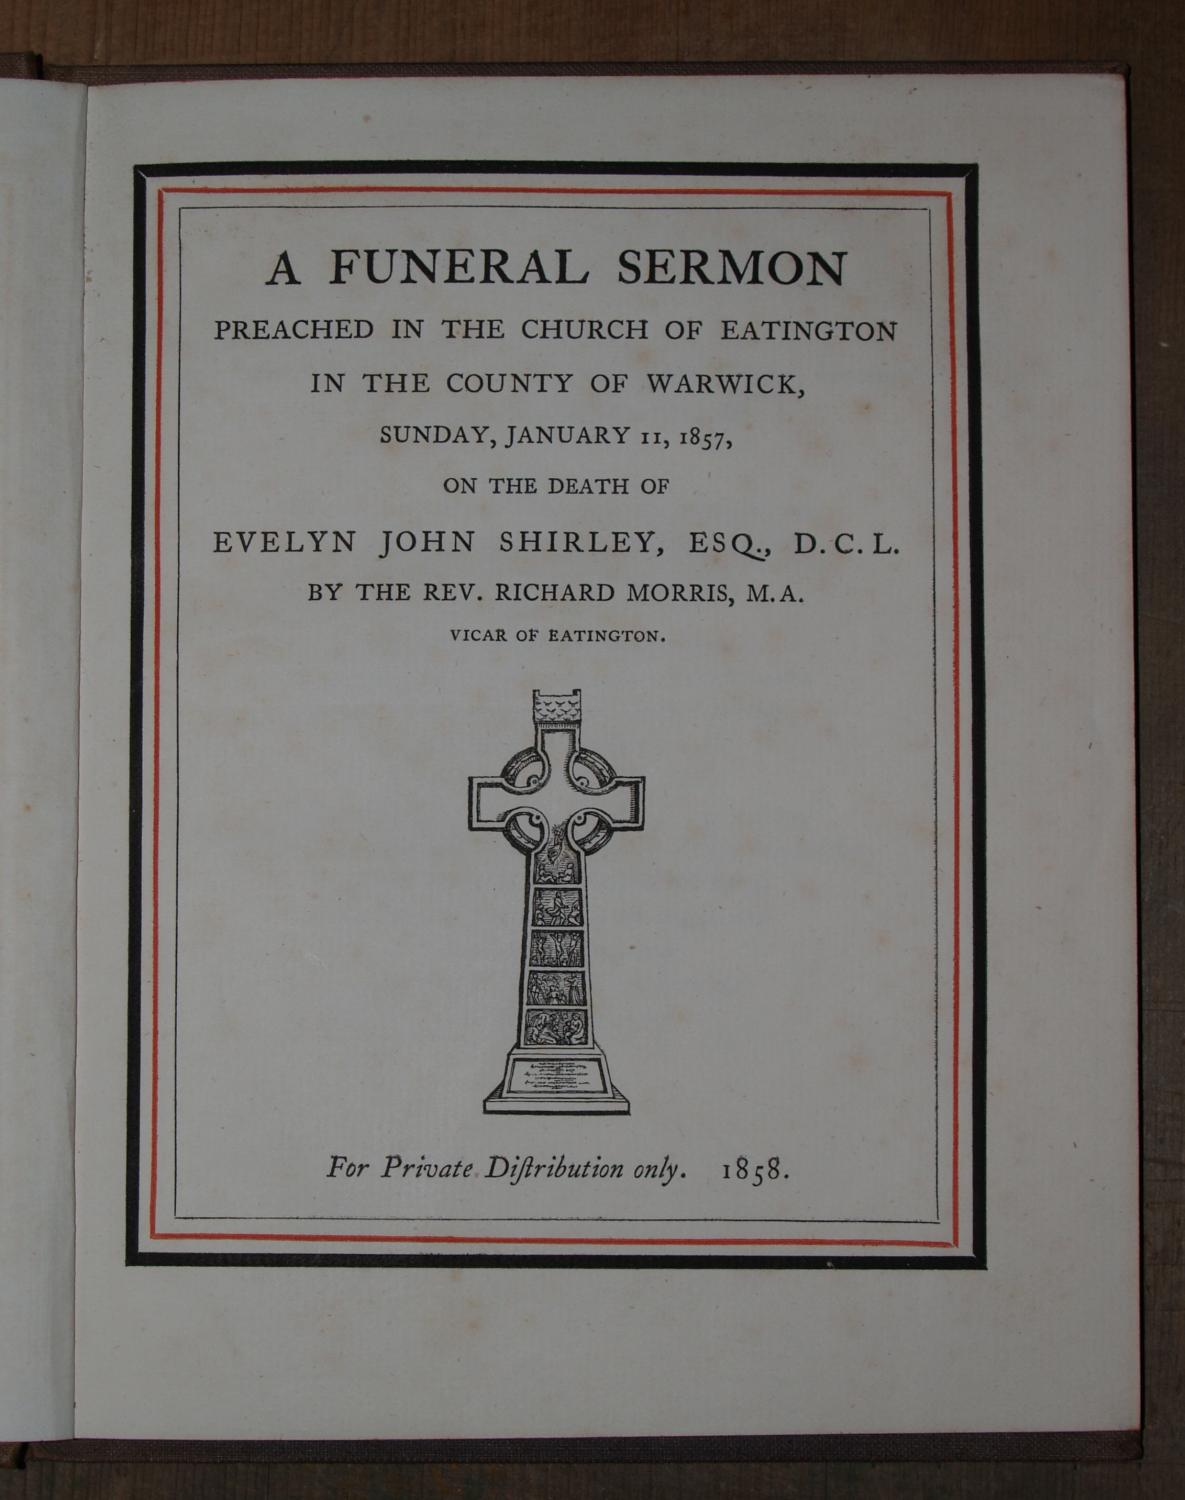 A Funeral Sermon Preached in the Church of Eatington in the County of Warwick Sunday, January 11, ...